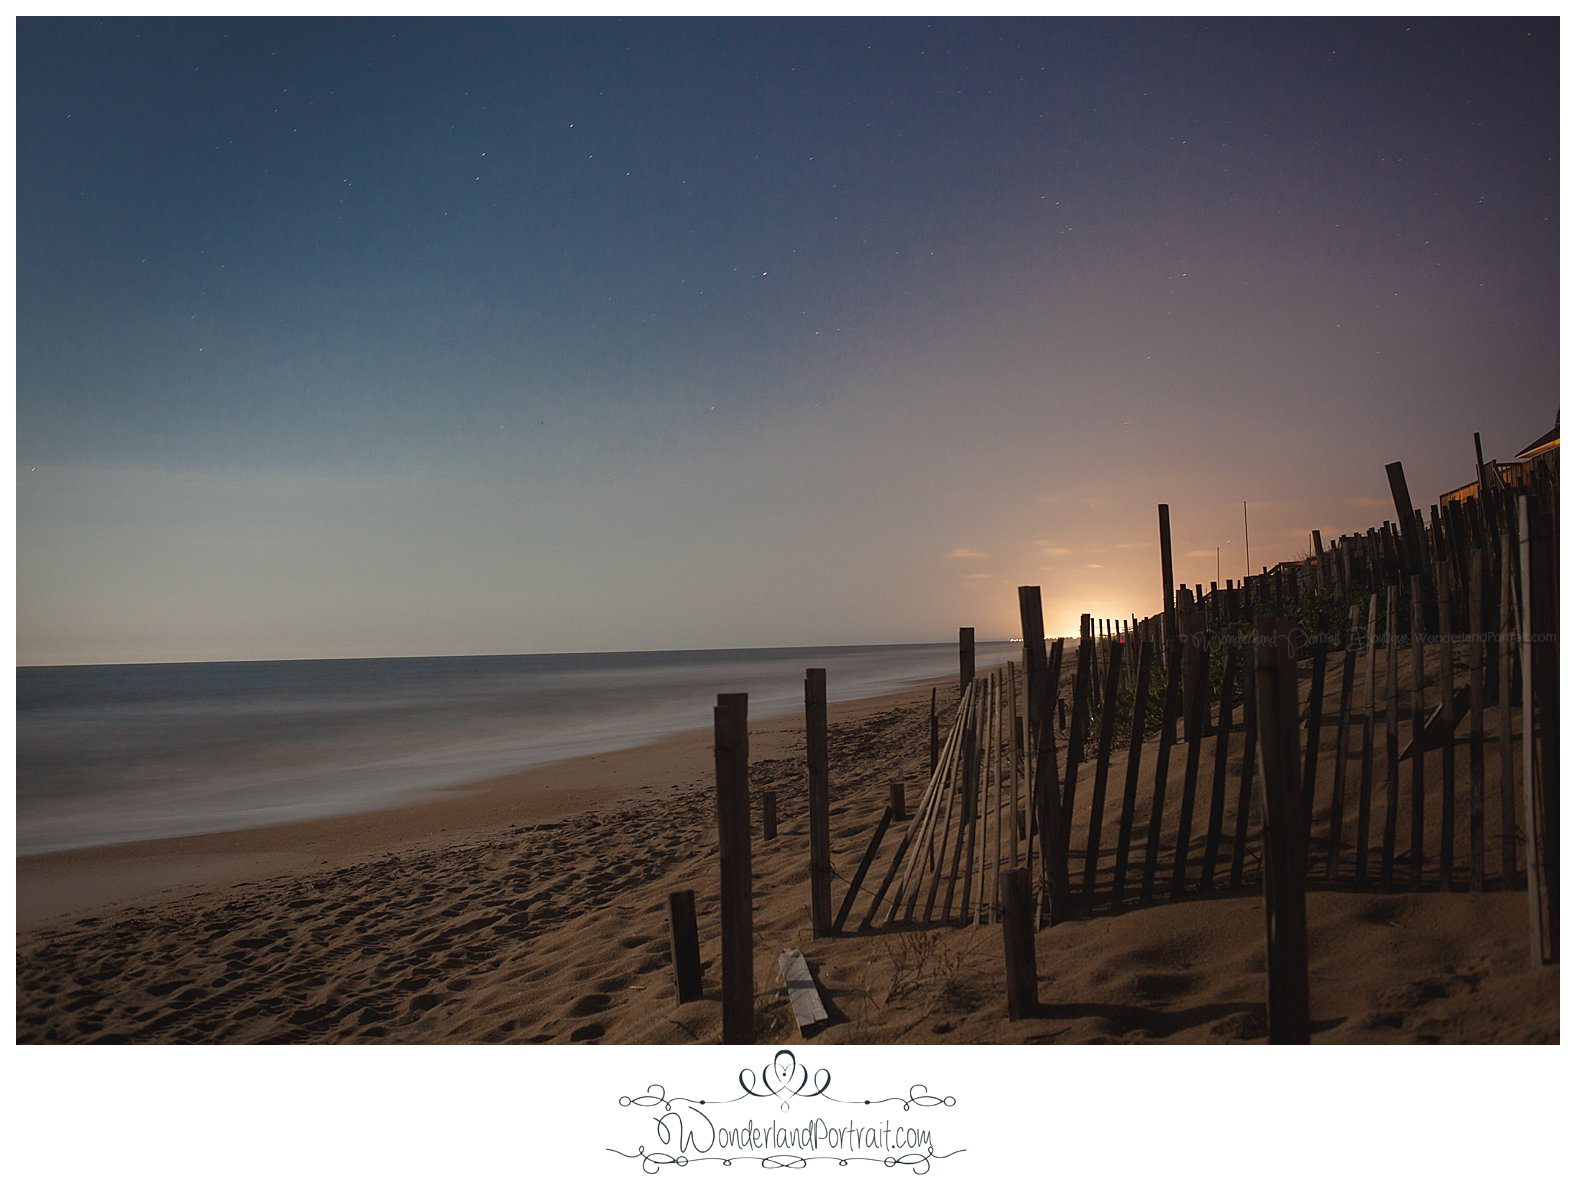 Outer Banks Night photography